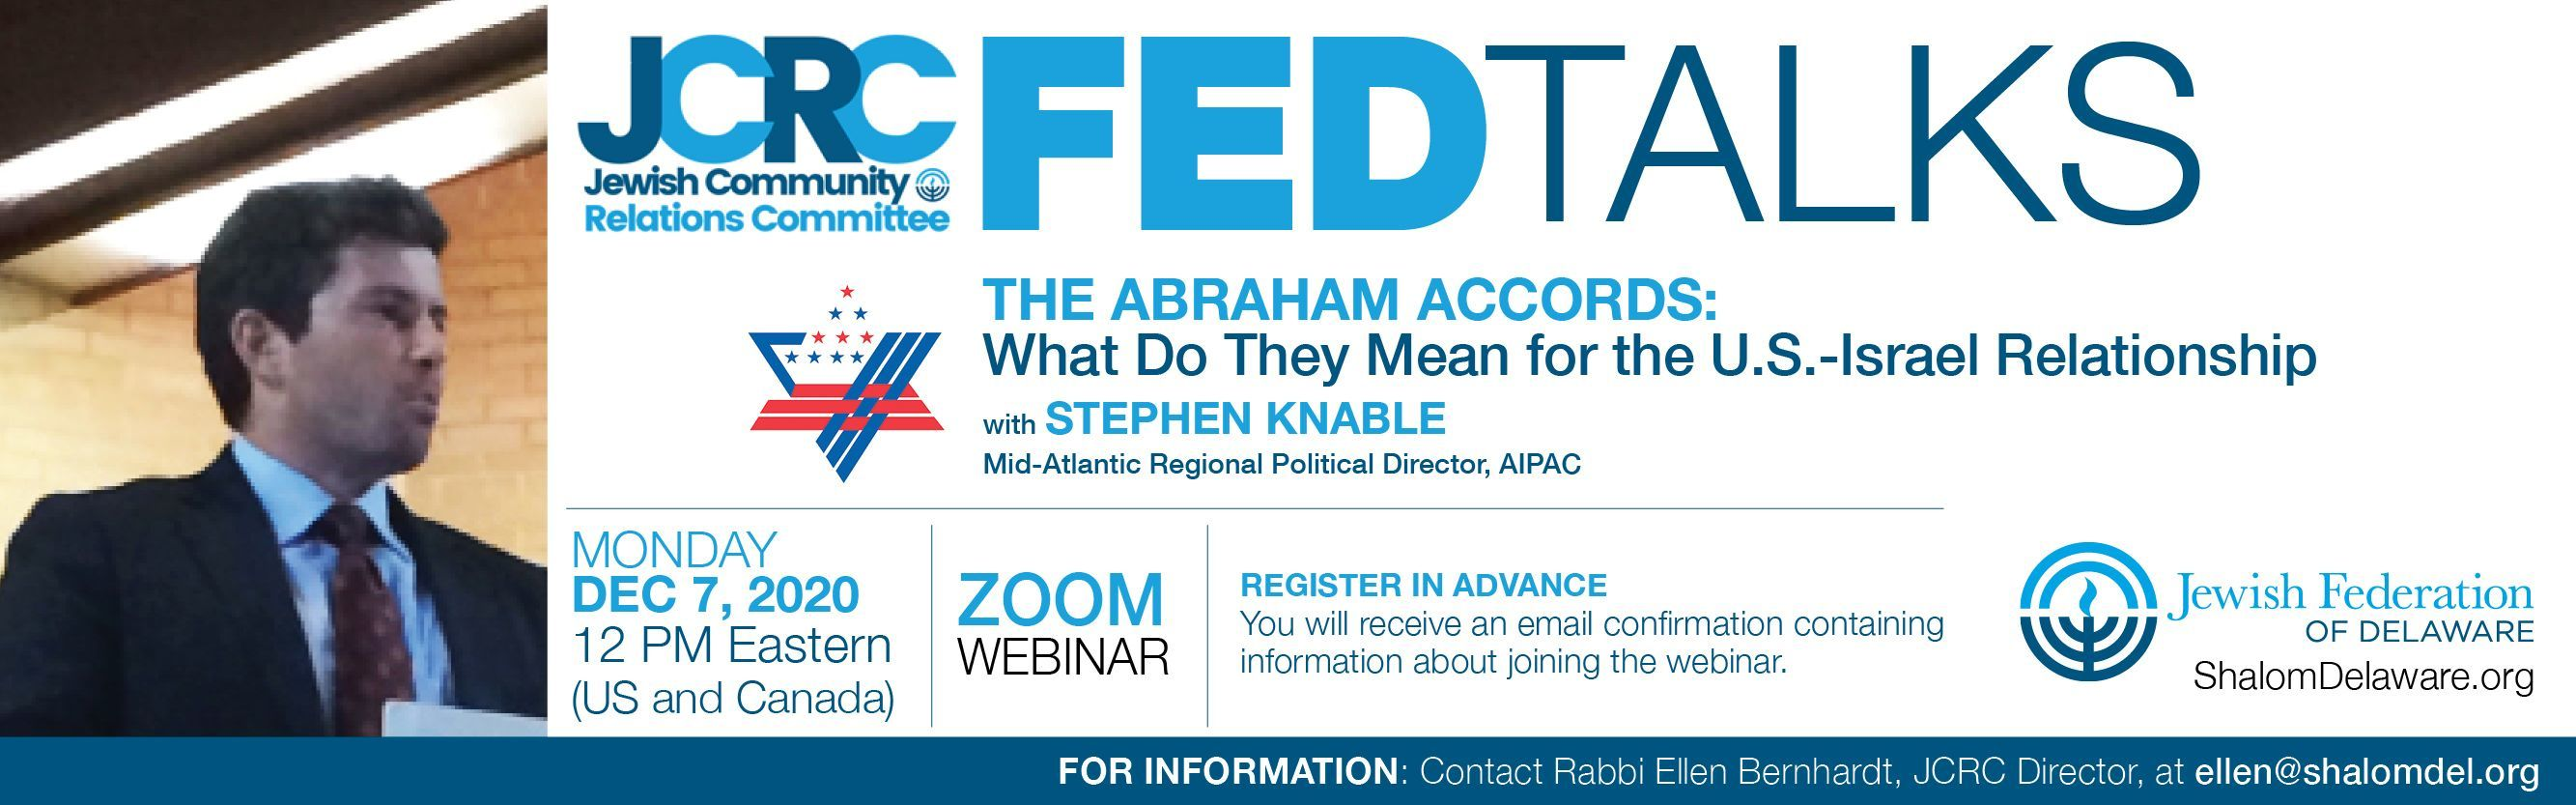 JCRC FEDTALKS: The Abraham Accords